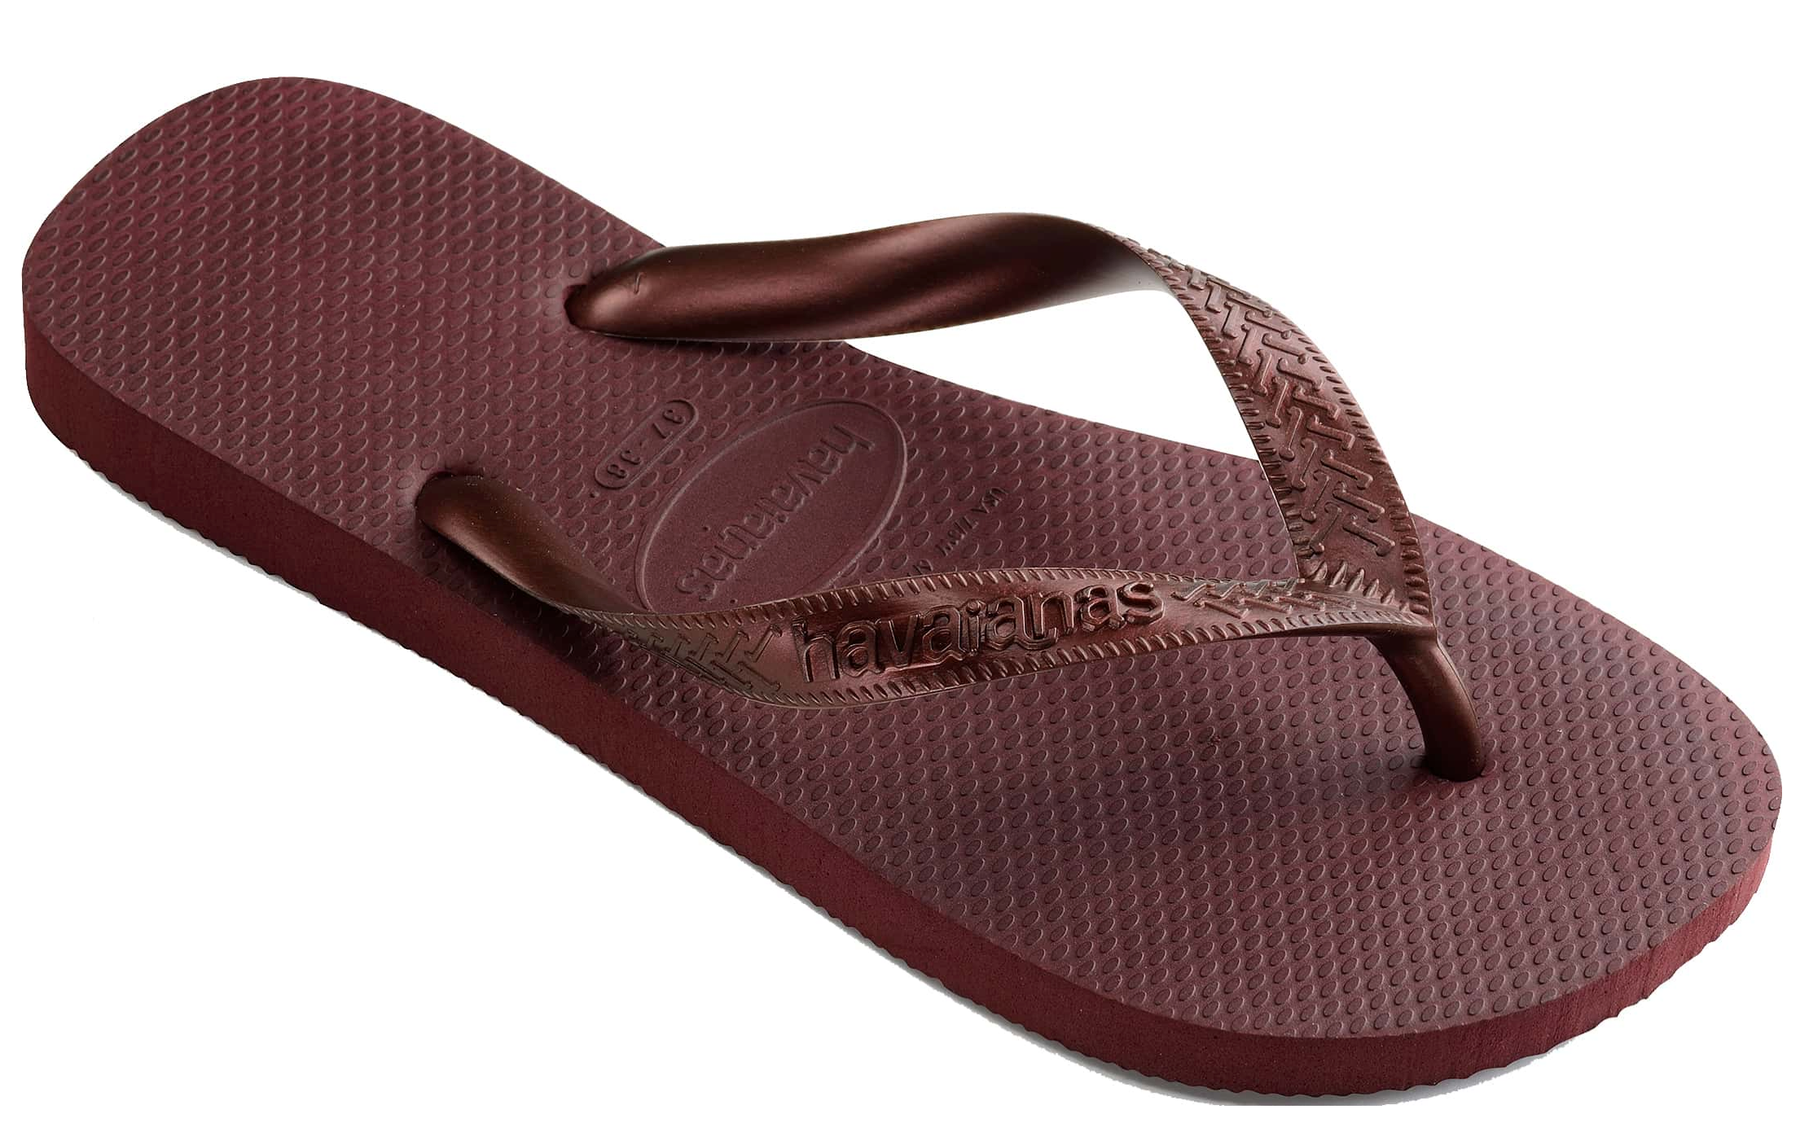 HAVAIANAS TOP TIRAS in GRAPE WINE-1